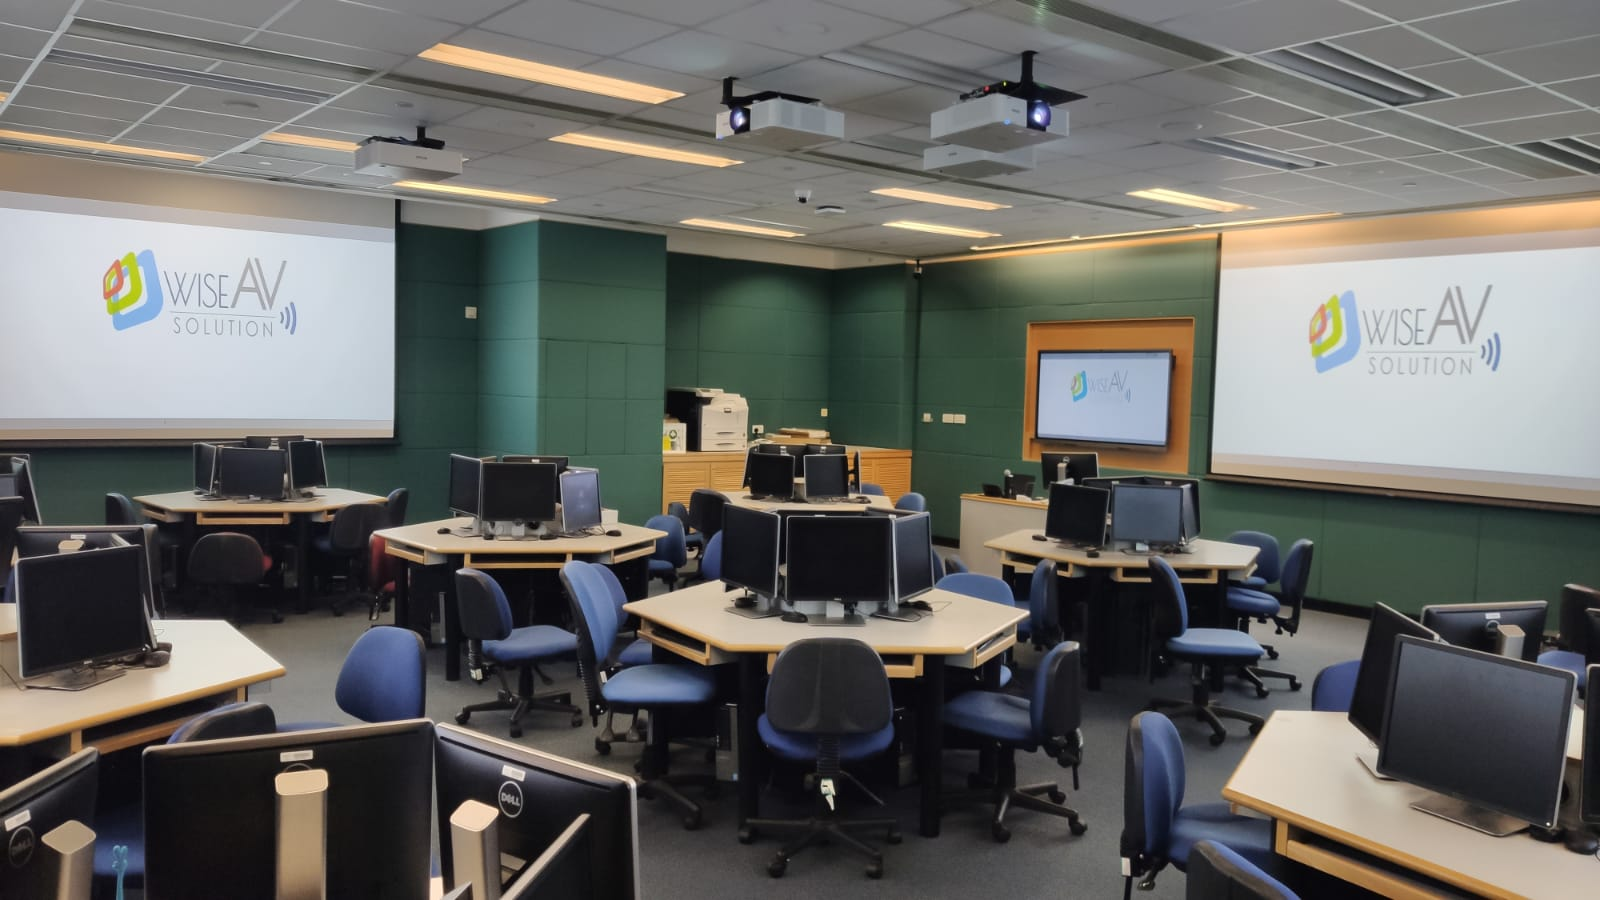 Multi-Media Learning Room for 50 People - WhatsApp Image 2021 03 25 at 17.54.24